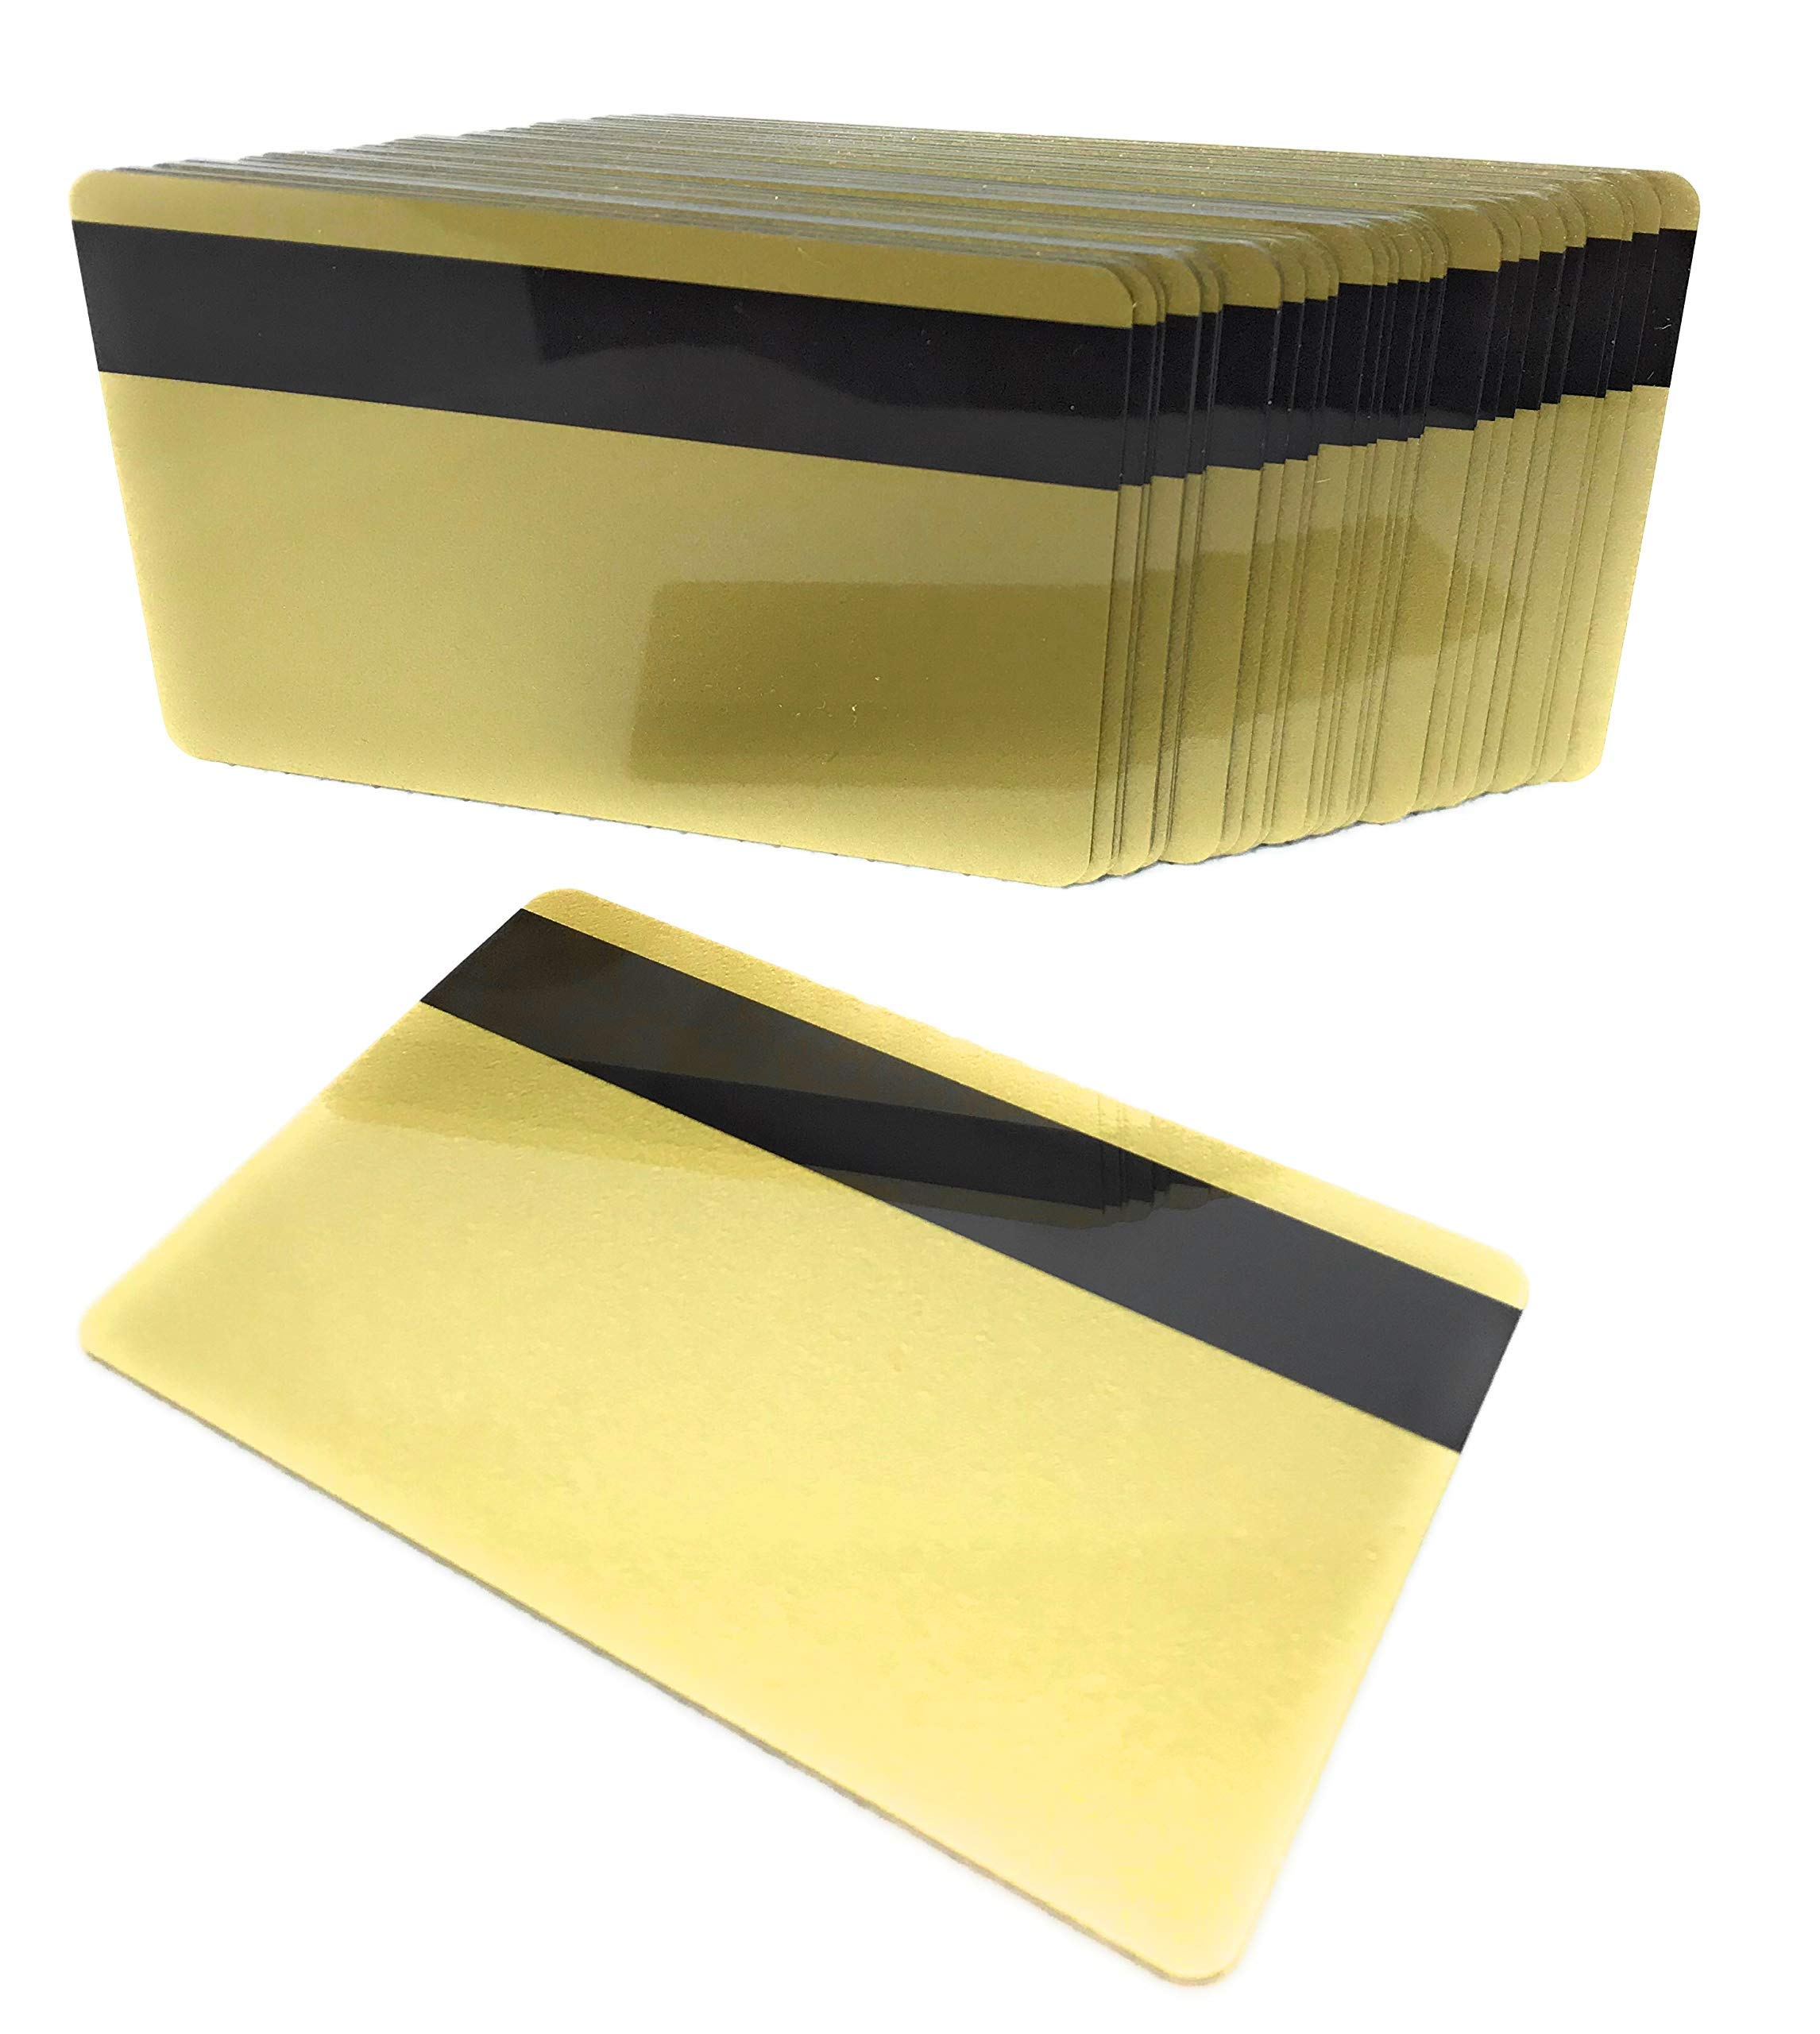 50 PVC Plastic Cards 30Mil HiCo Magnetic Stripe Gold